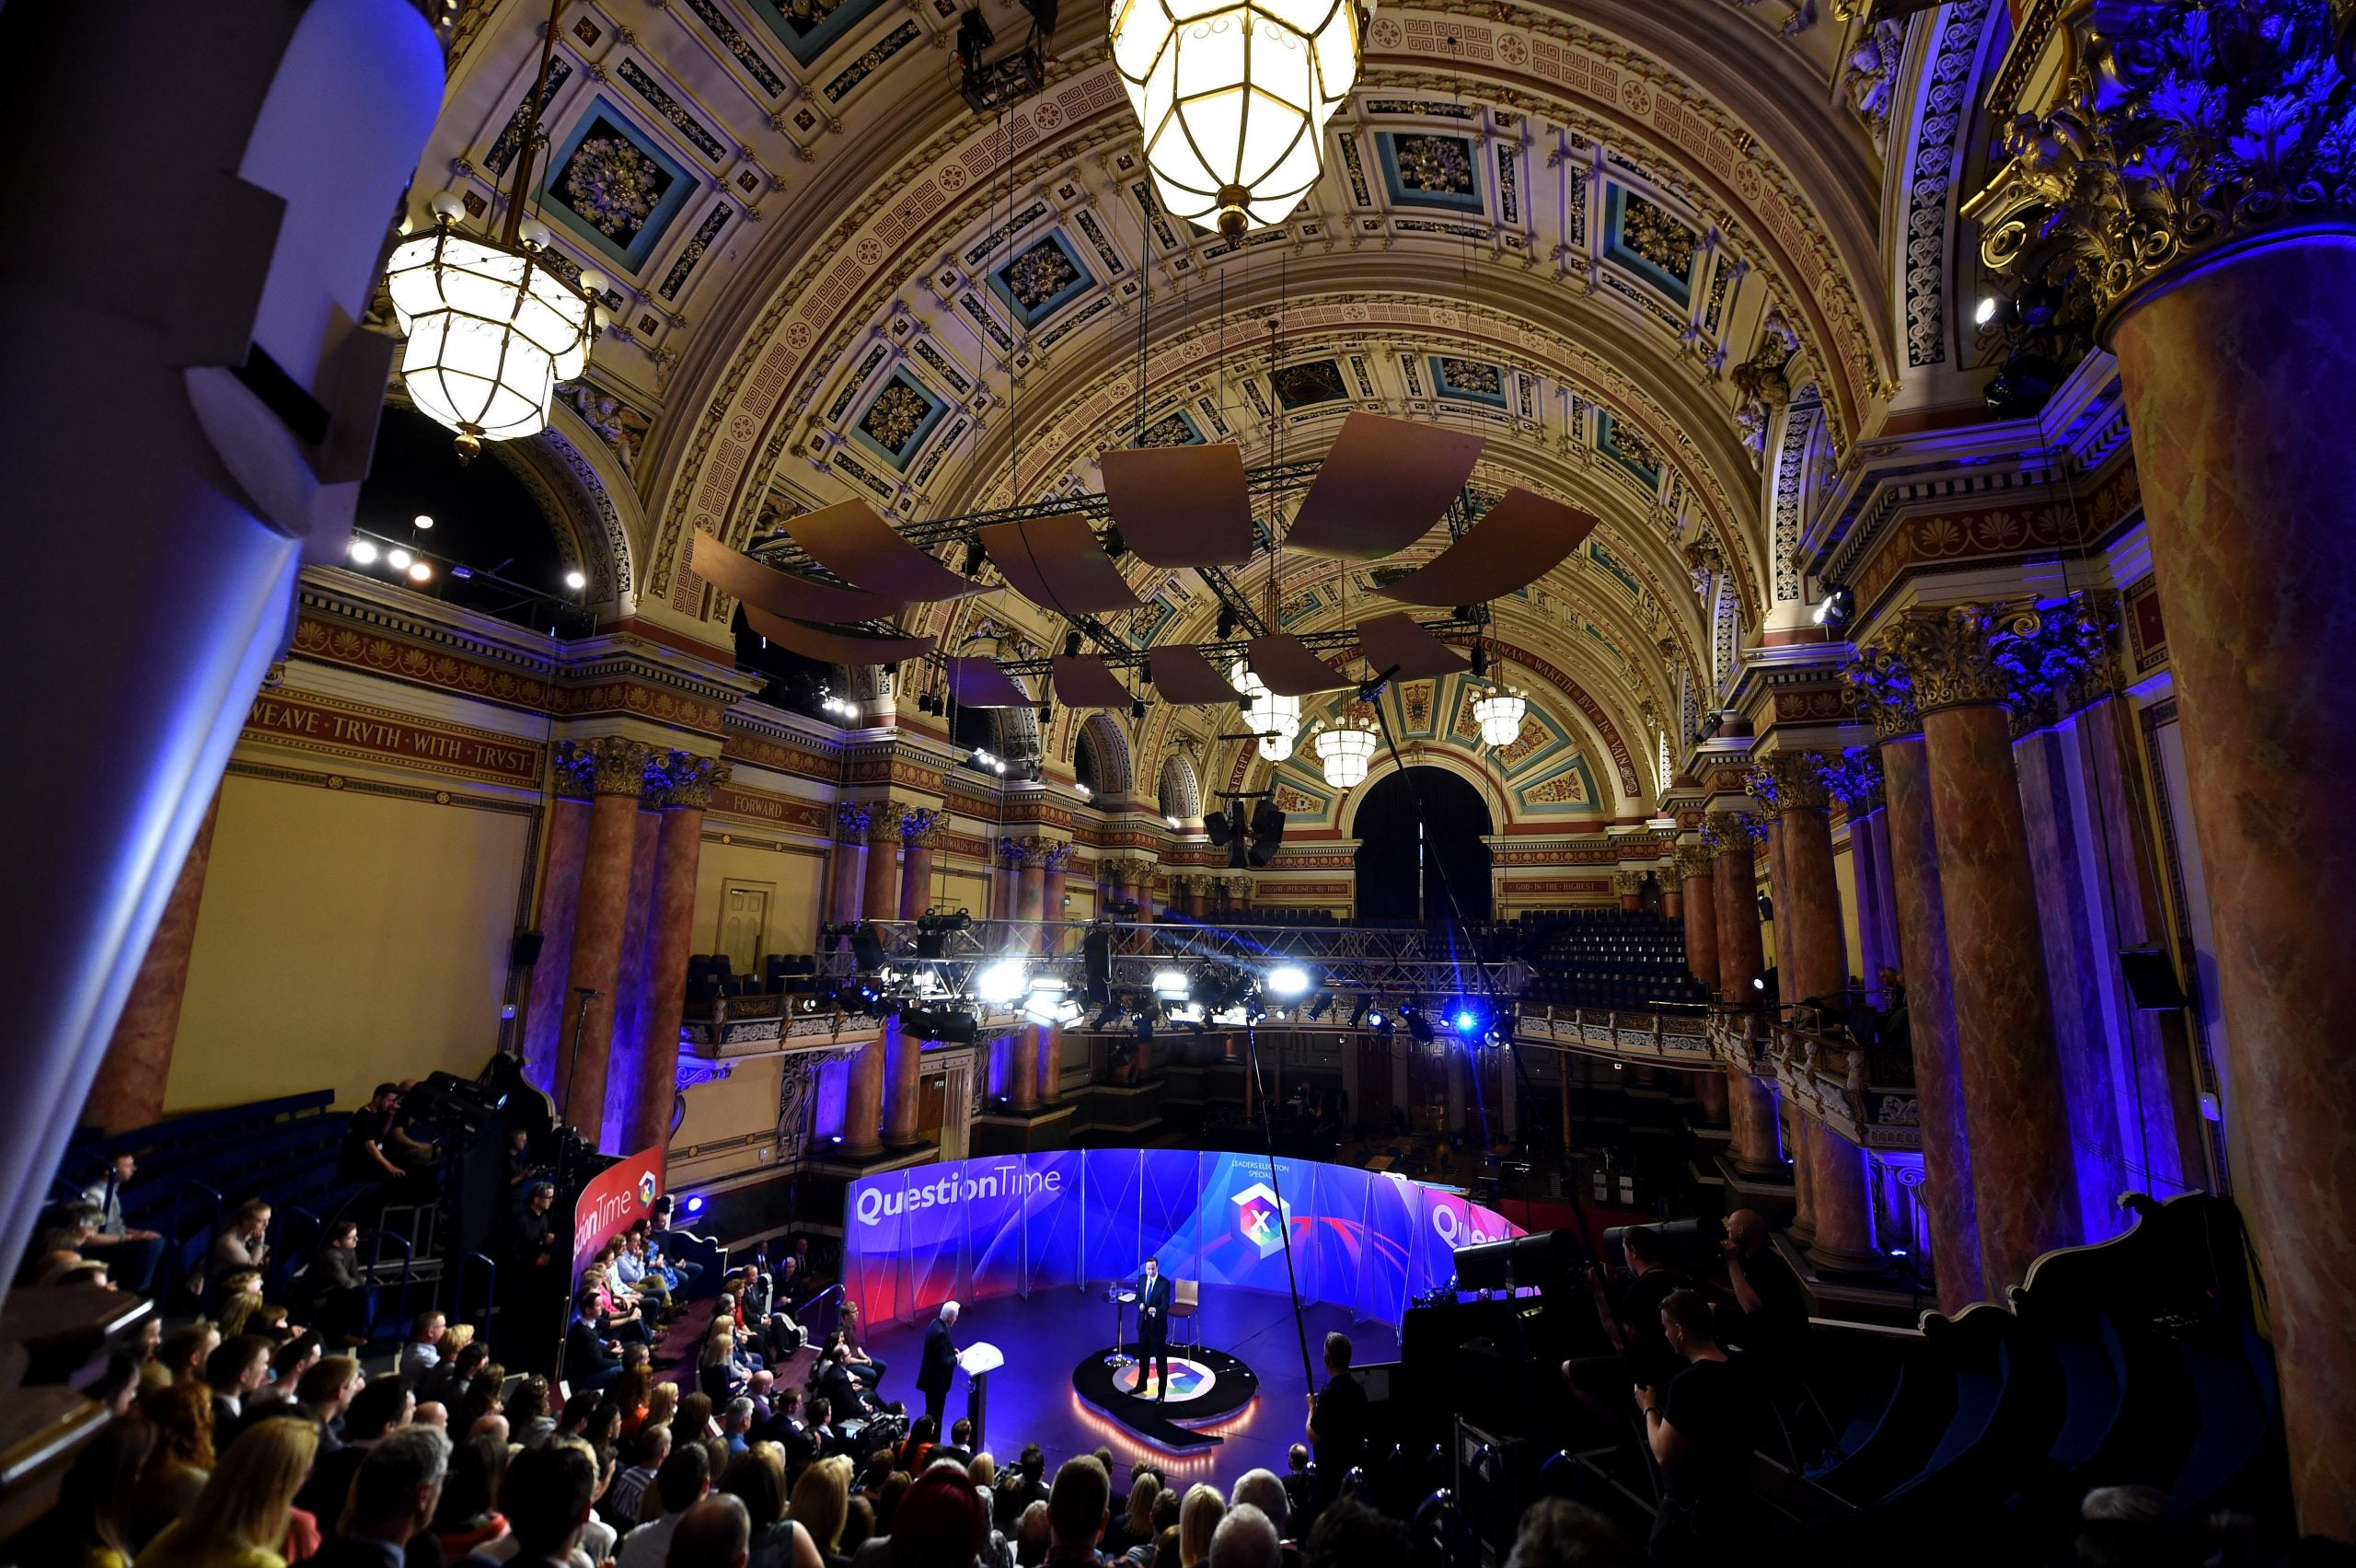 The BBC's Question Time shows how narrow our establishment really is